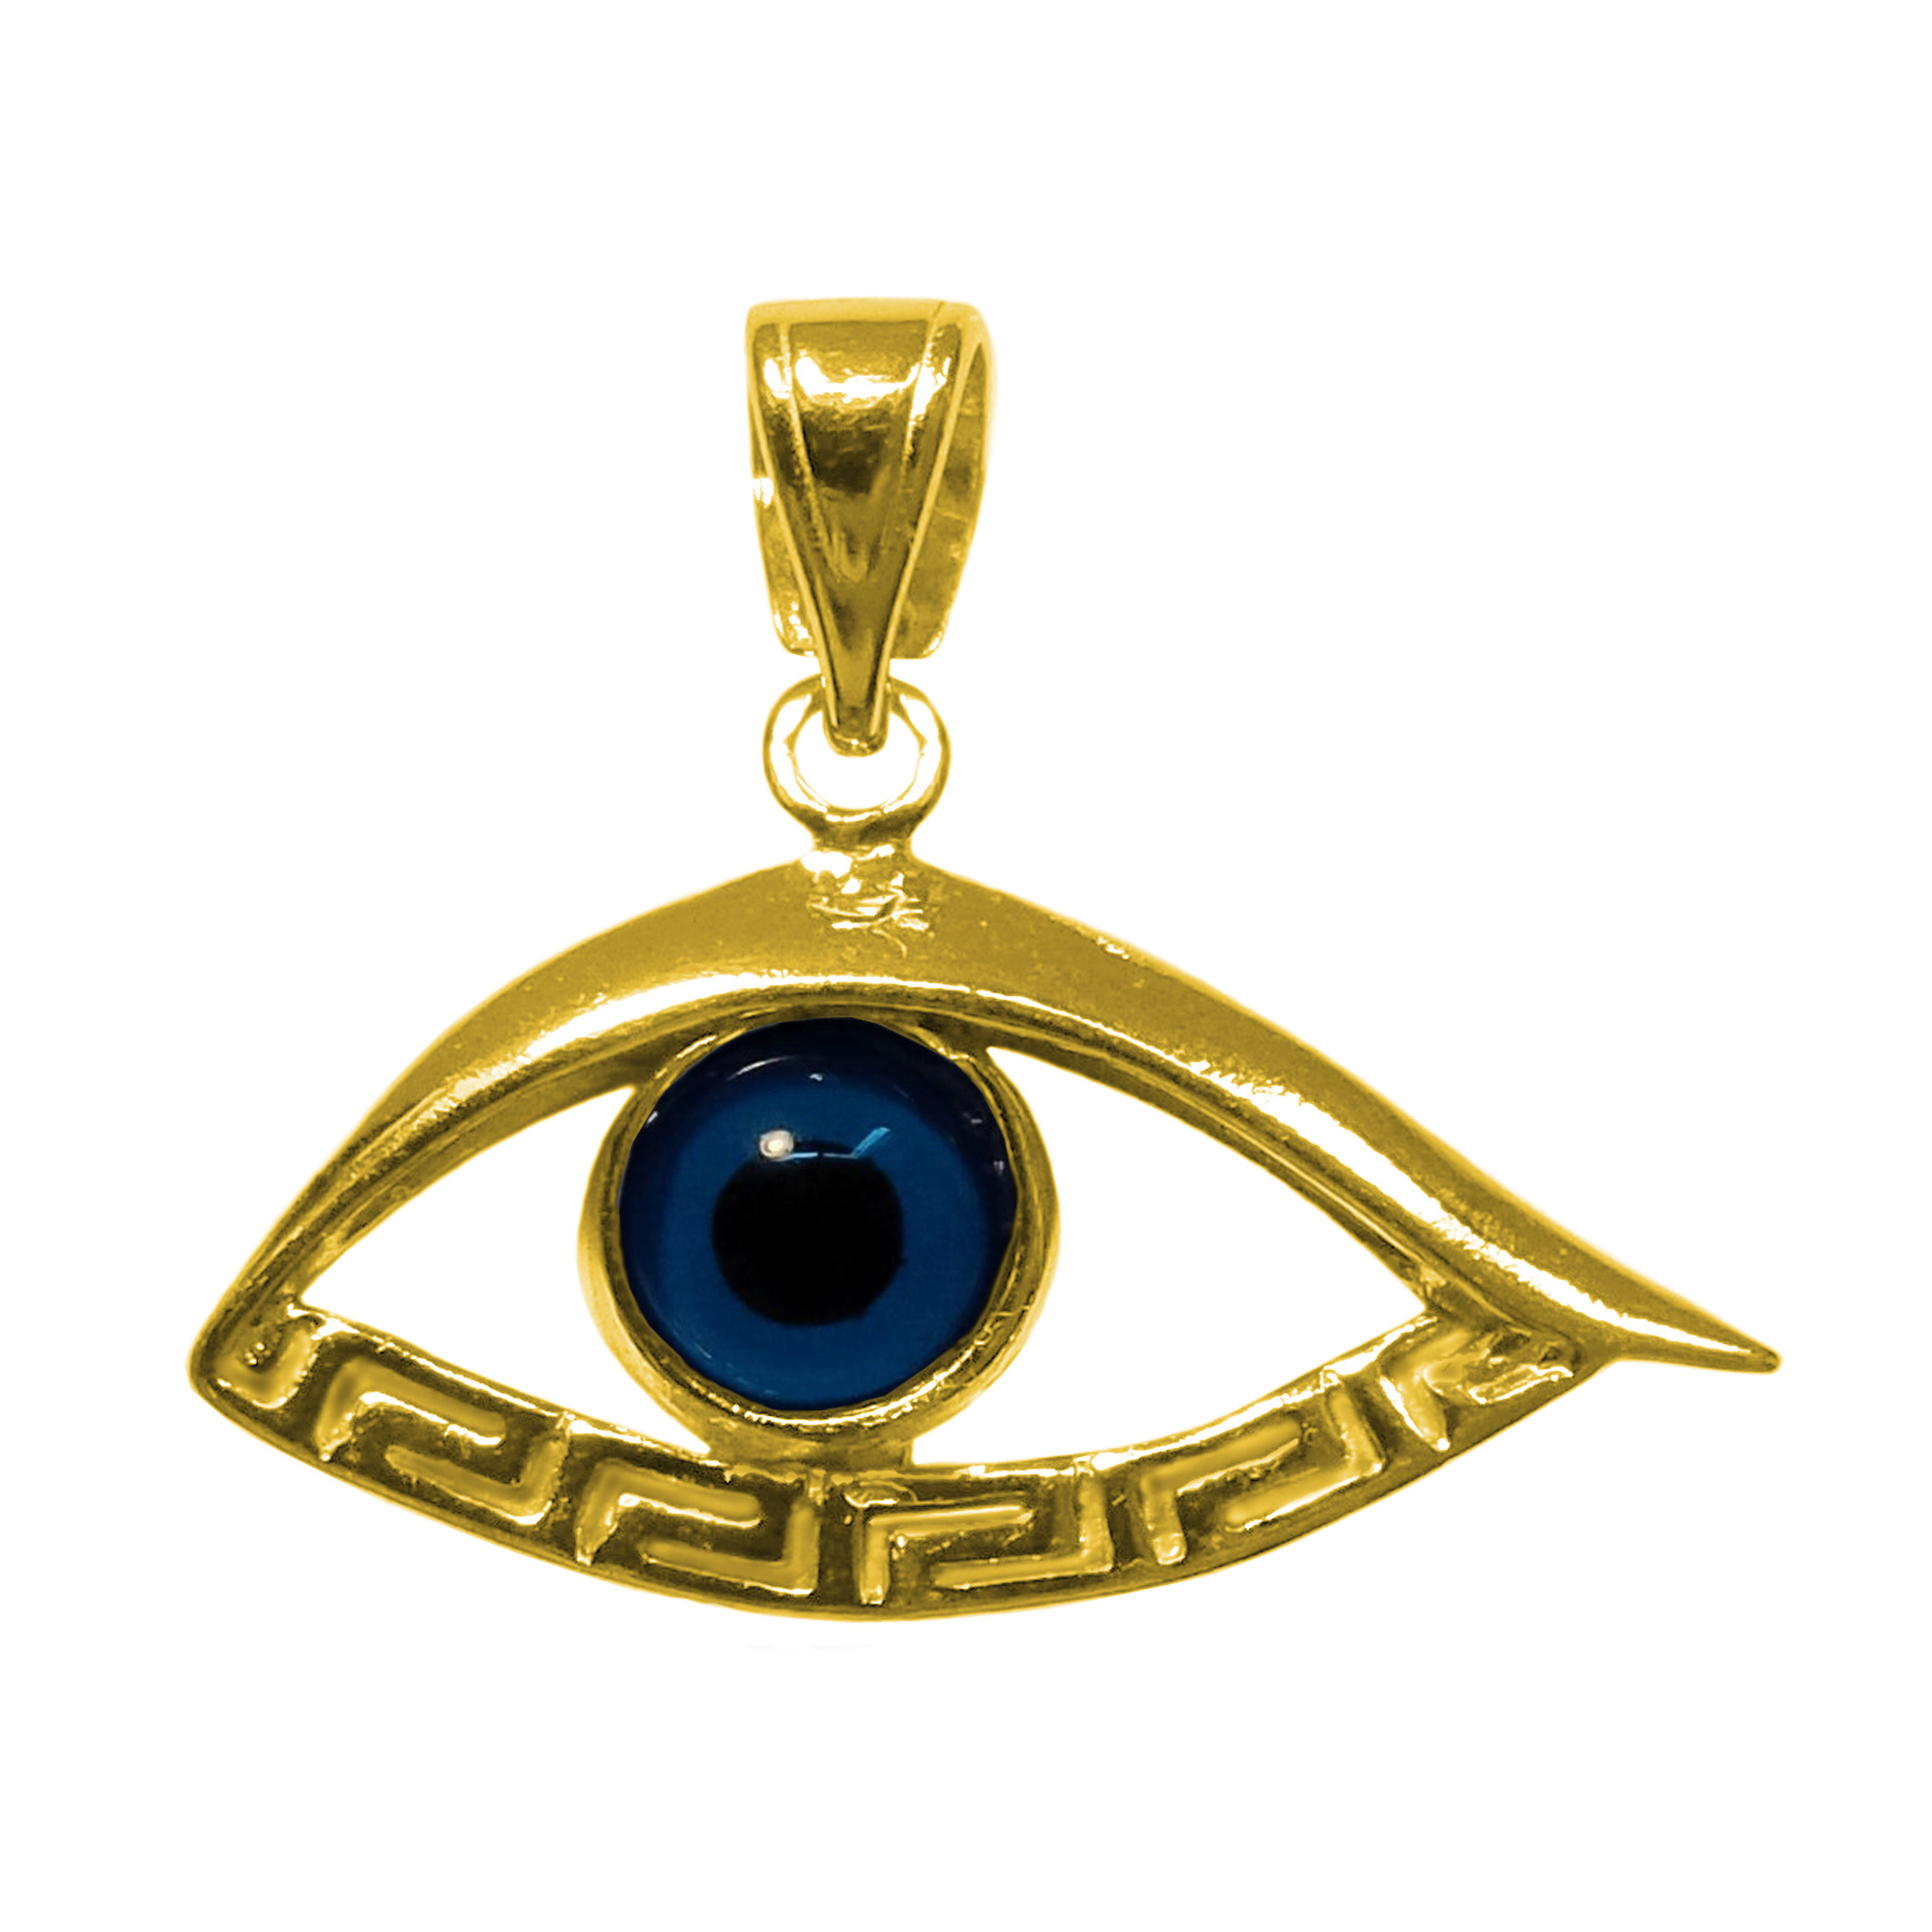 Sterling Silver 18 Karat Gold Overlay Plated Evil Eye Meandros Pendant Inspired from the of Greek ancient jewelry era, this sterling silver gold overlay charm features the Greek Key Motif, also known as the Meander or eternity symbol, bordering a beautiful glass Evil Eye.